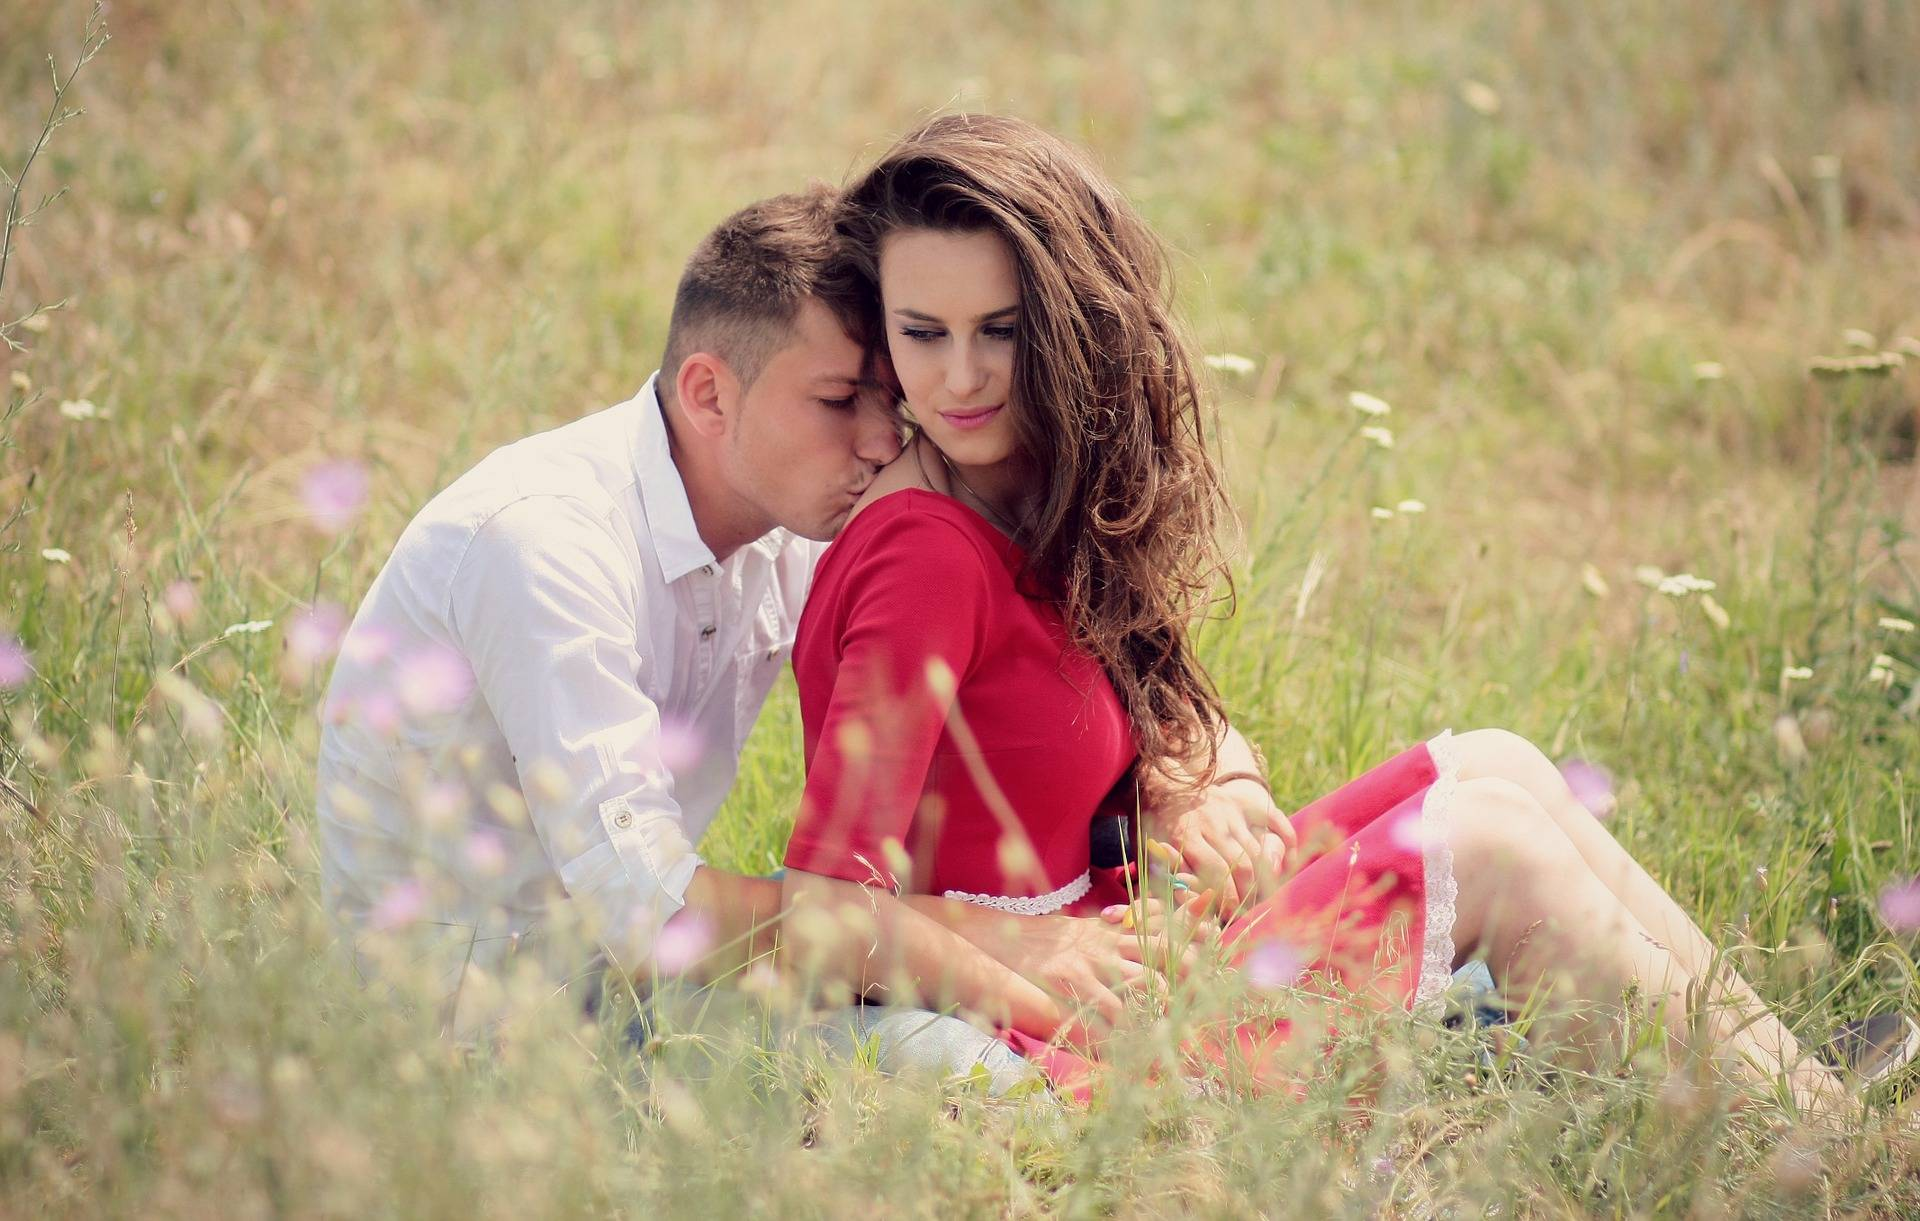 Signs To Predict That You're In a Cute Relationship